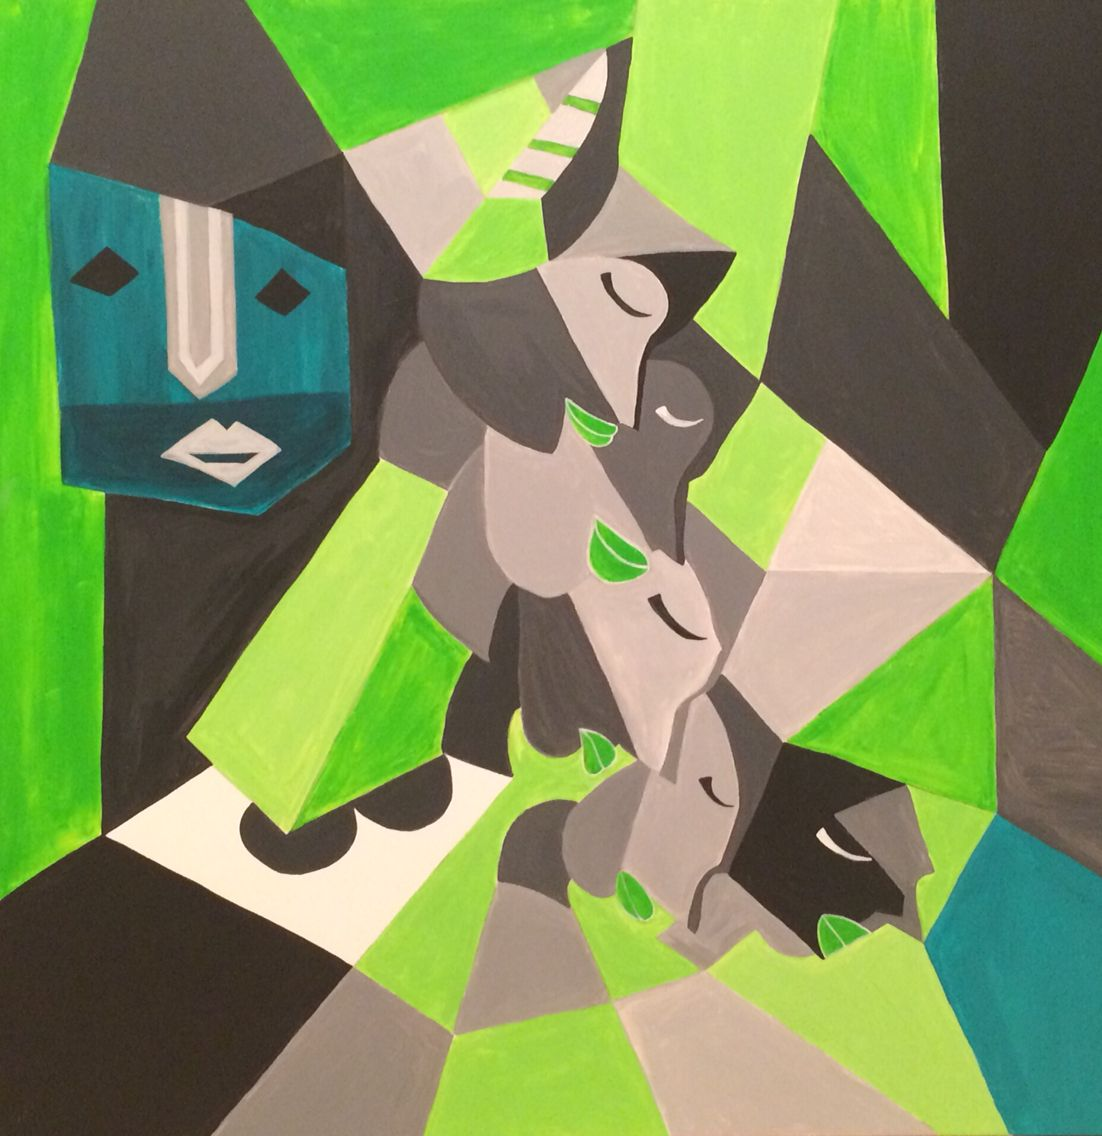 Green and Gray, 80x80 cm, acrylic on canvas, June 2015